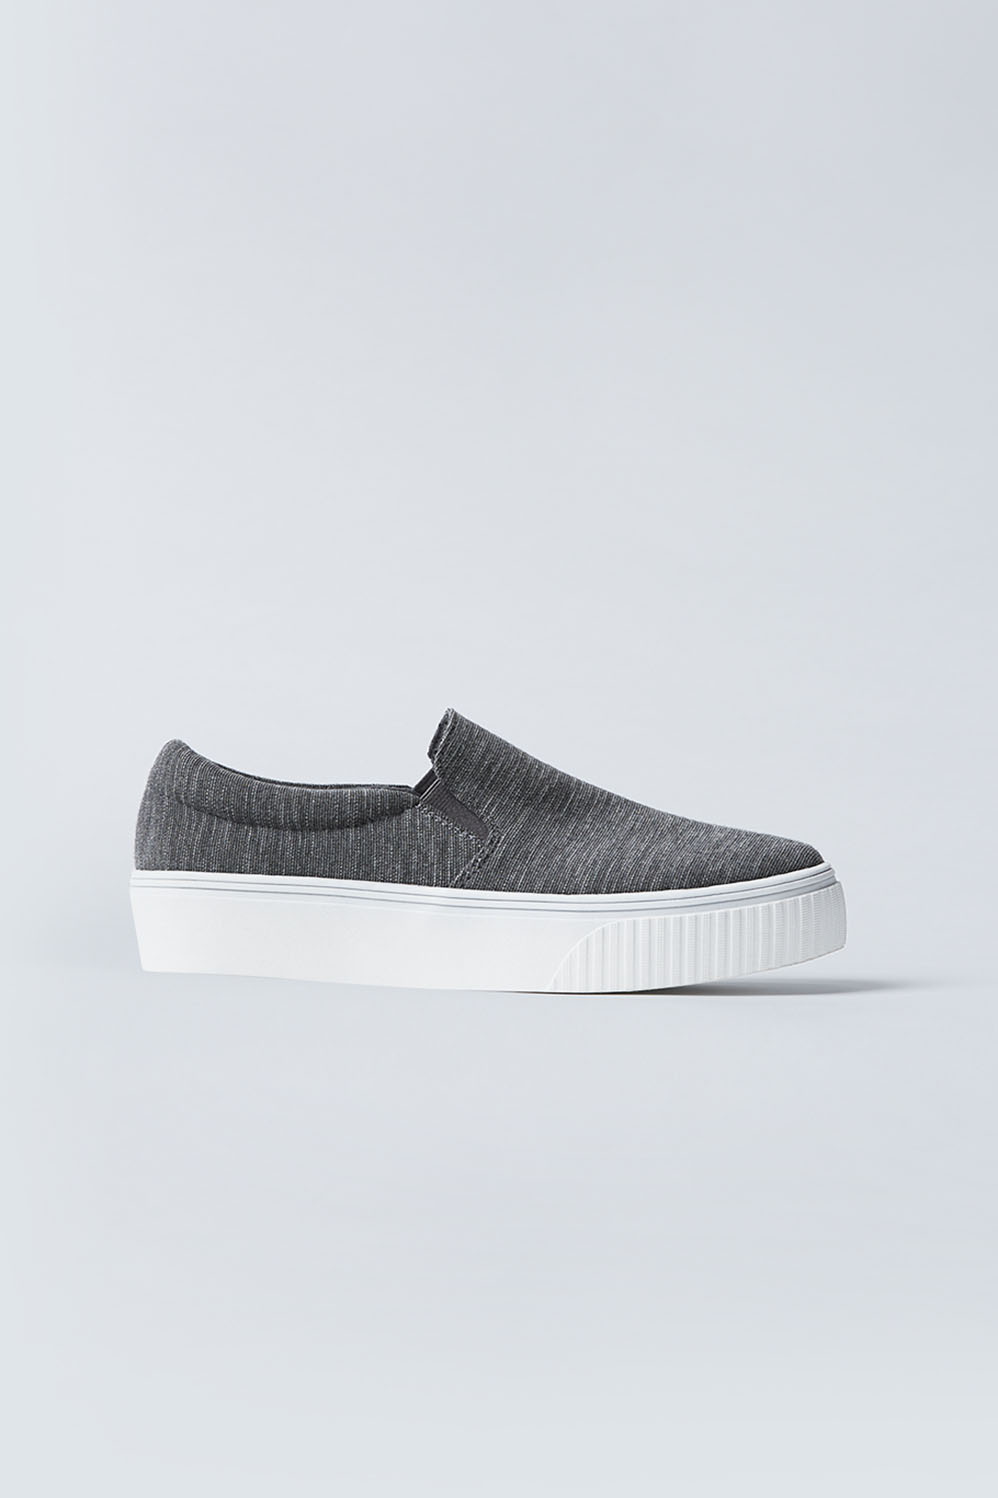 Fabletics Fashion Pier Platform Slip On Womens Grey Heather Size 10 Say hello to your sneaker-non-sneaker hybrid, designed with a slip-on design. Think cute coffee runs, effortless errands and down-to-earth date nights. Comfortable Memory Foam Insole, Slip-On Design with Platform, Soft Knit Material, Fabric Content. Textile upper / Man made sole, Fit. Runs Narrow